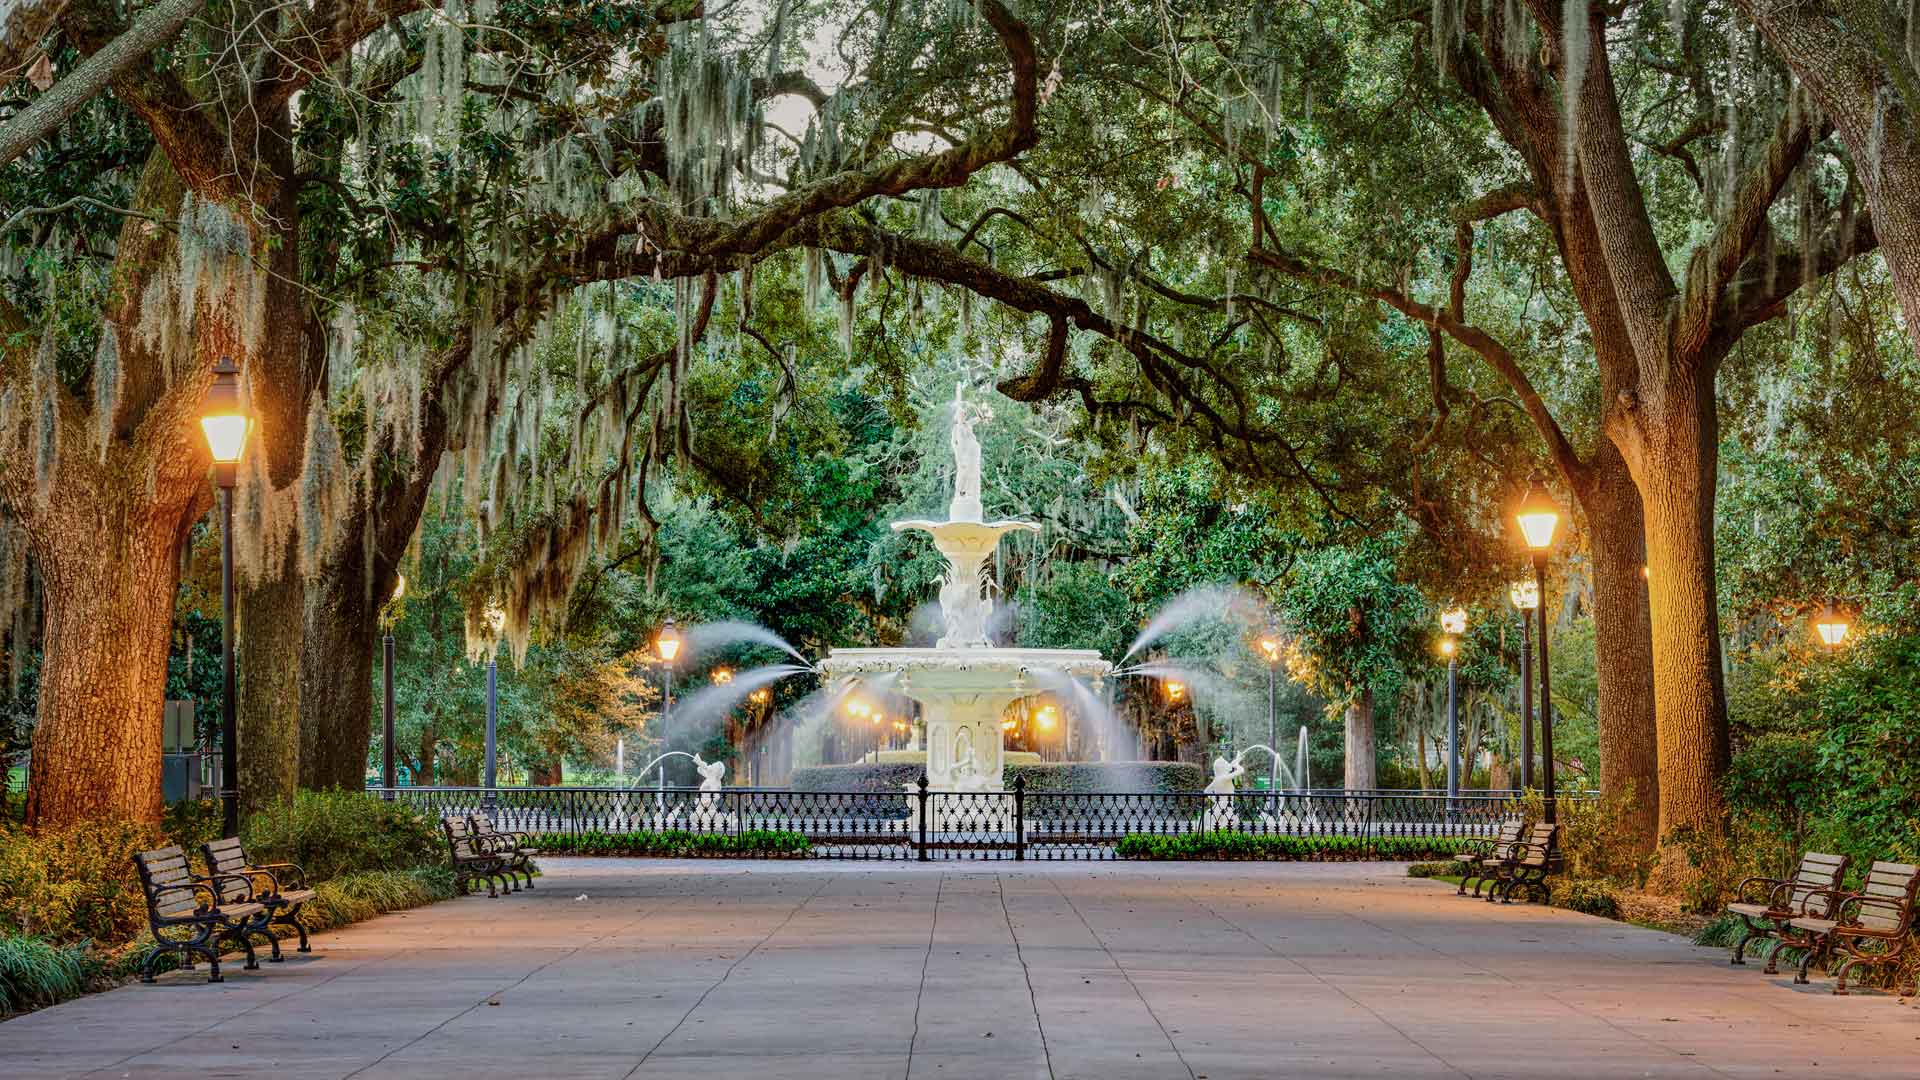 Fountain in Savannah, Georgia